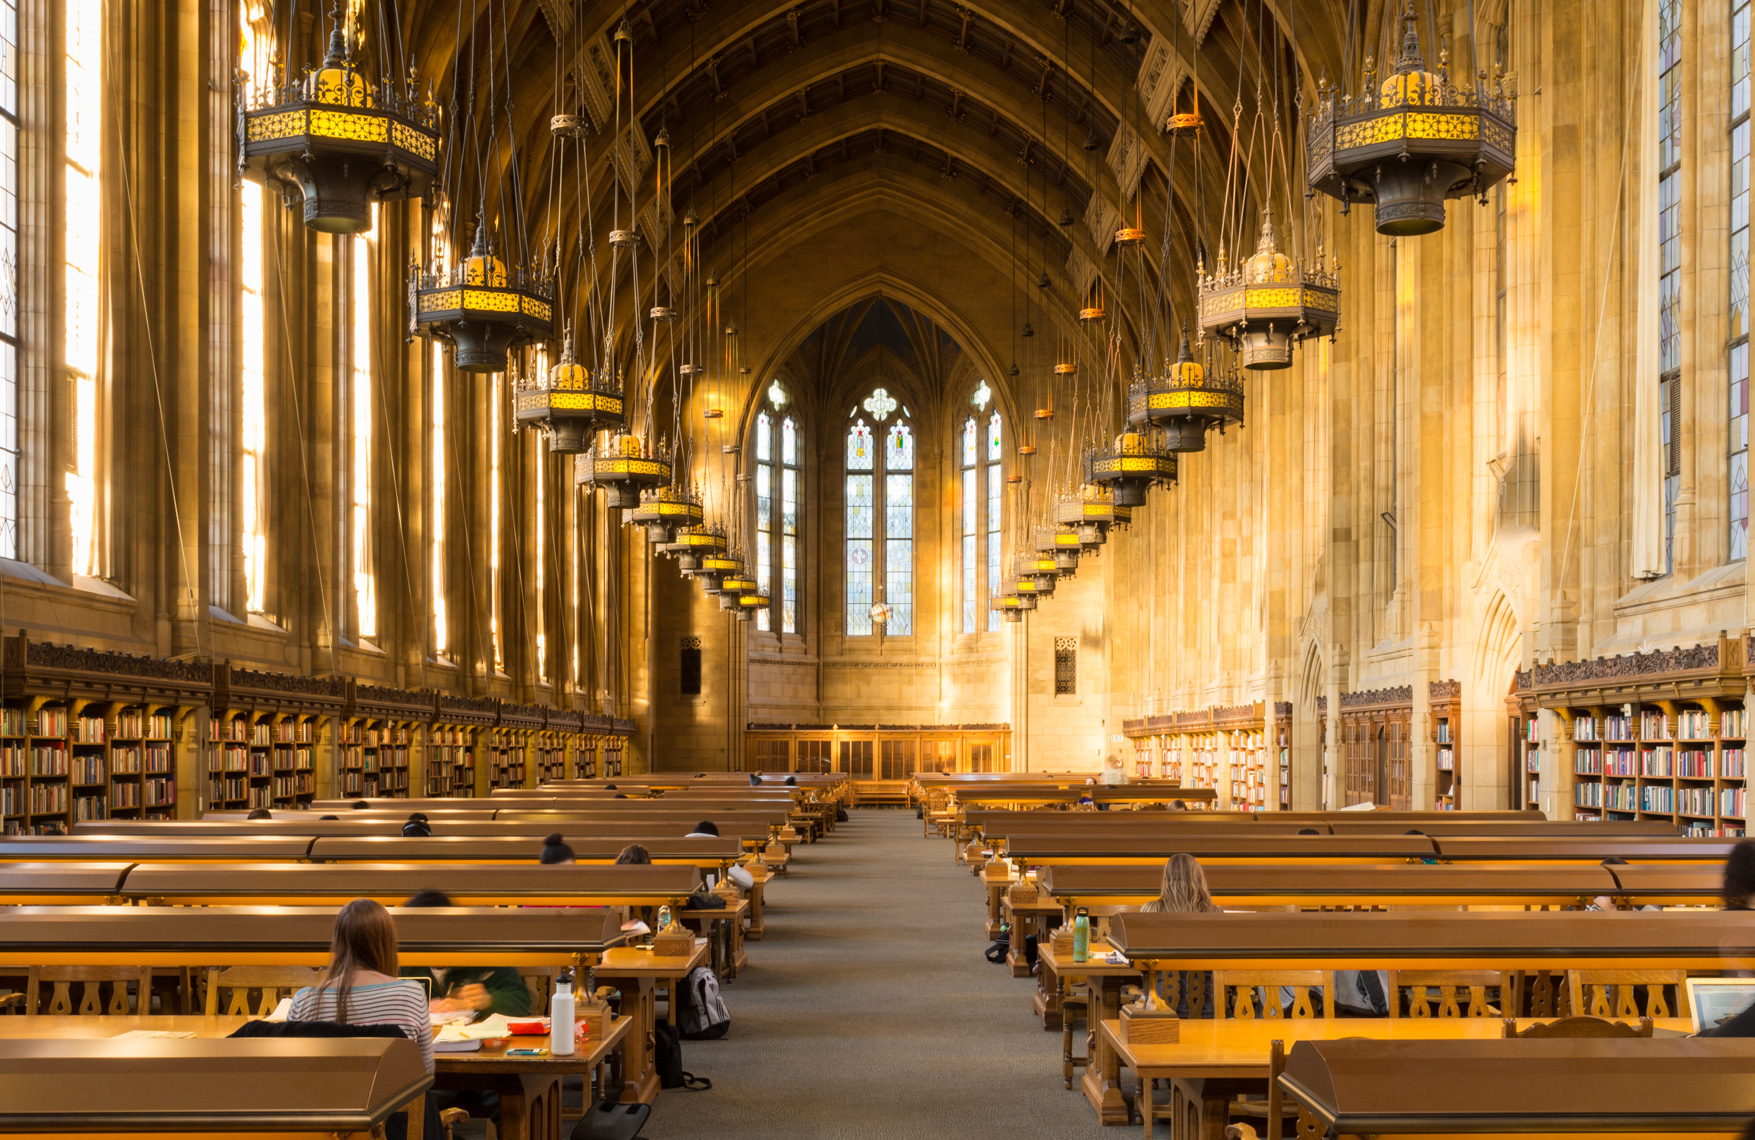 Suzzallo Library interior, University of Washington, Seattle